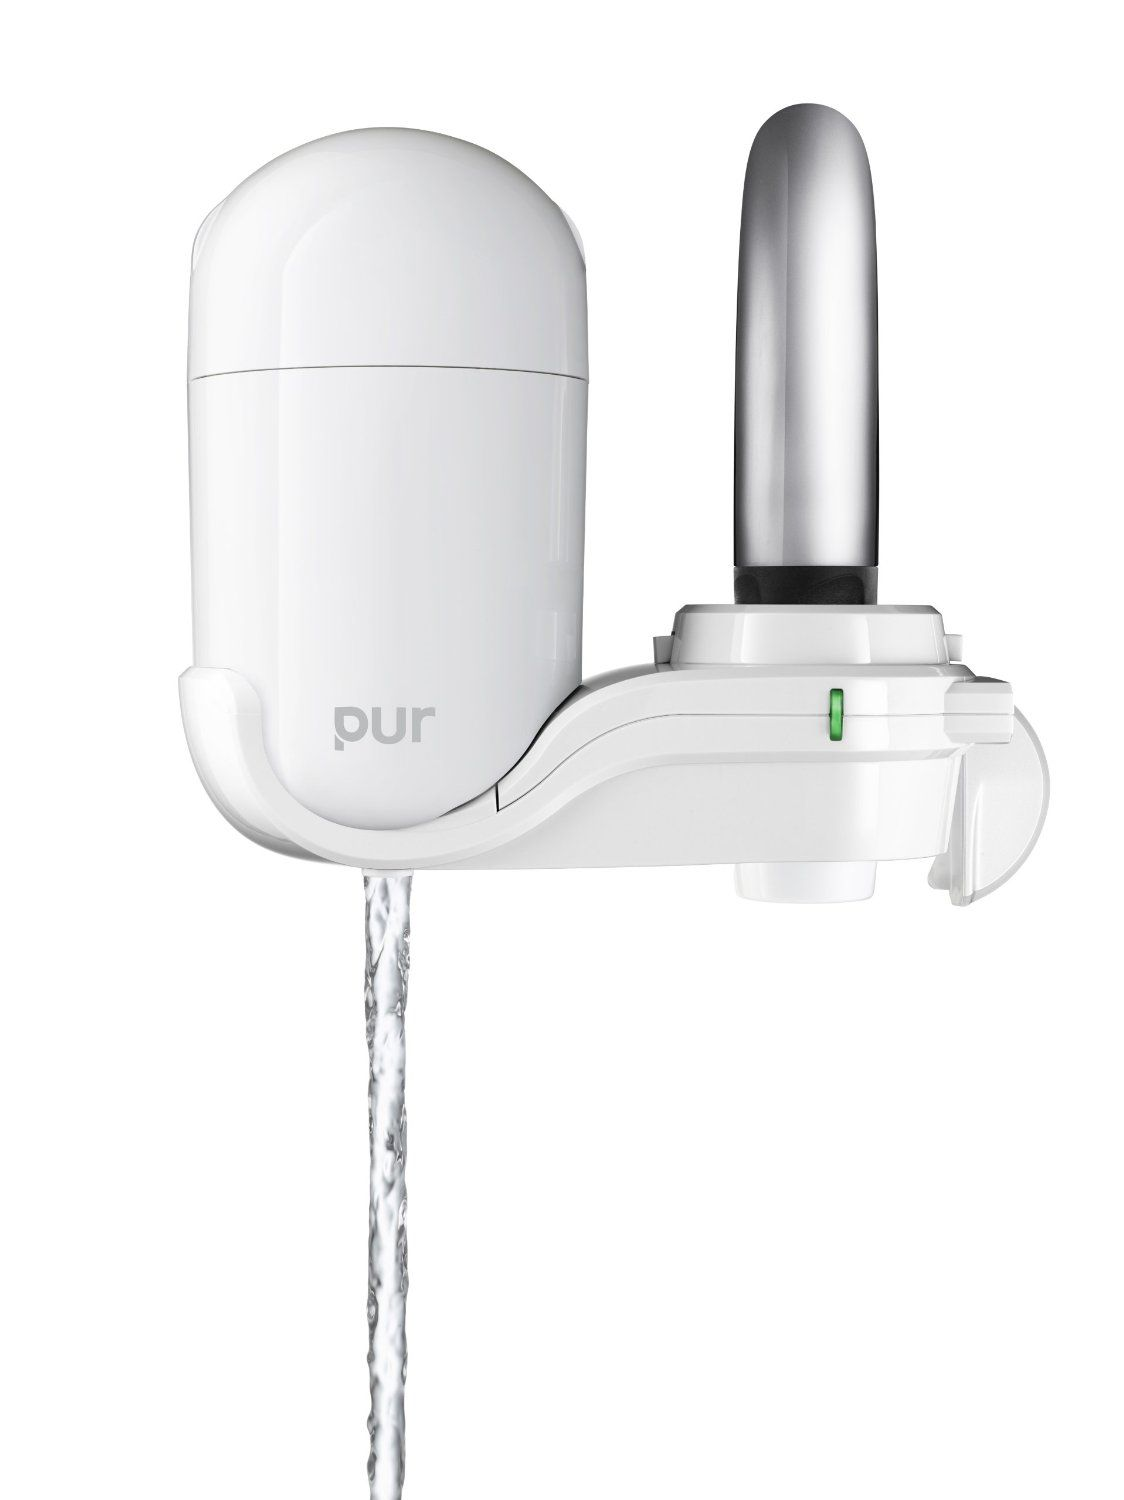 pur fm 3333b 2 stage vertical faucet filter system white